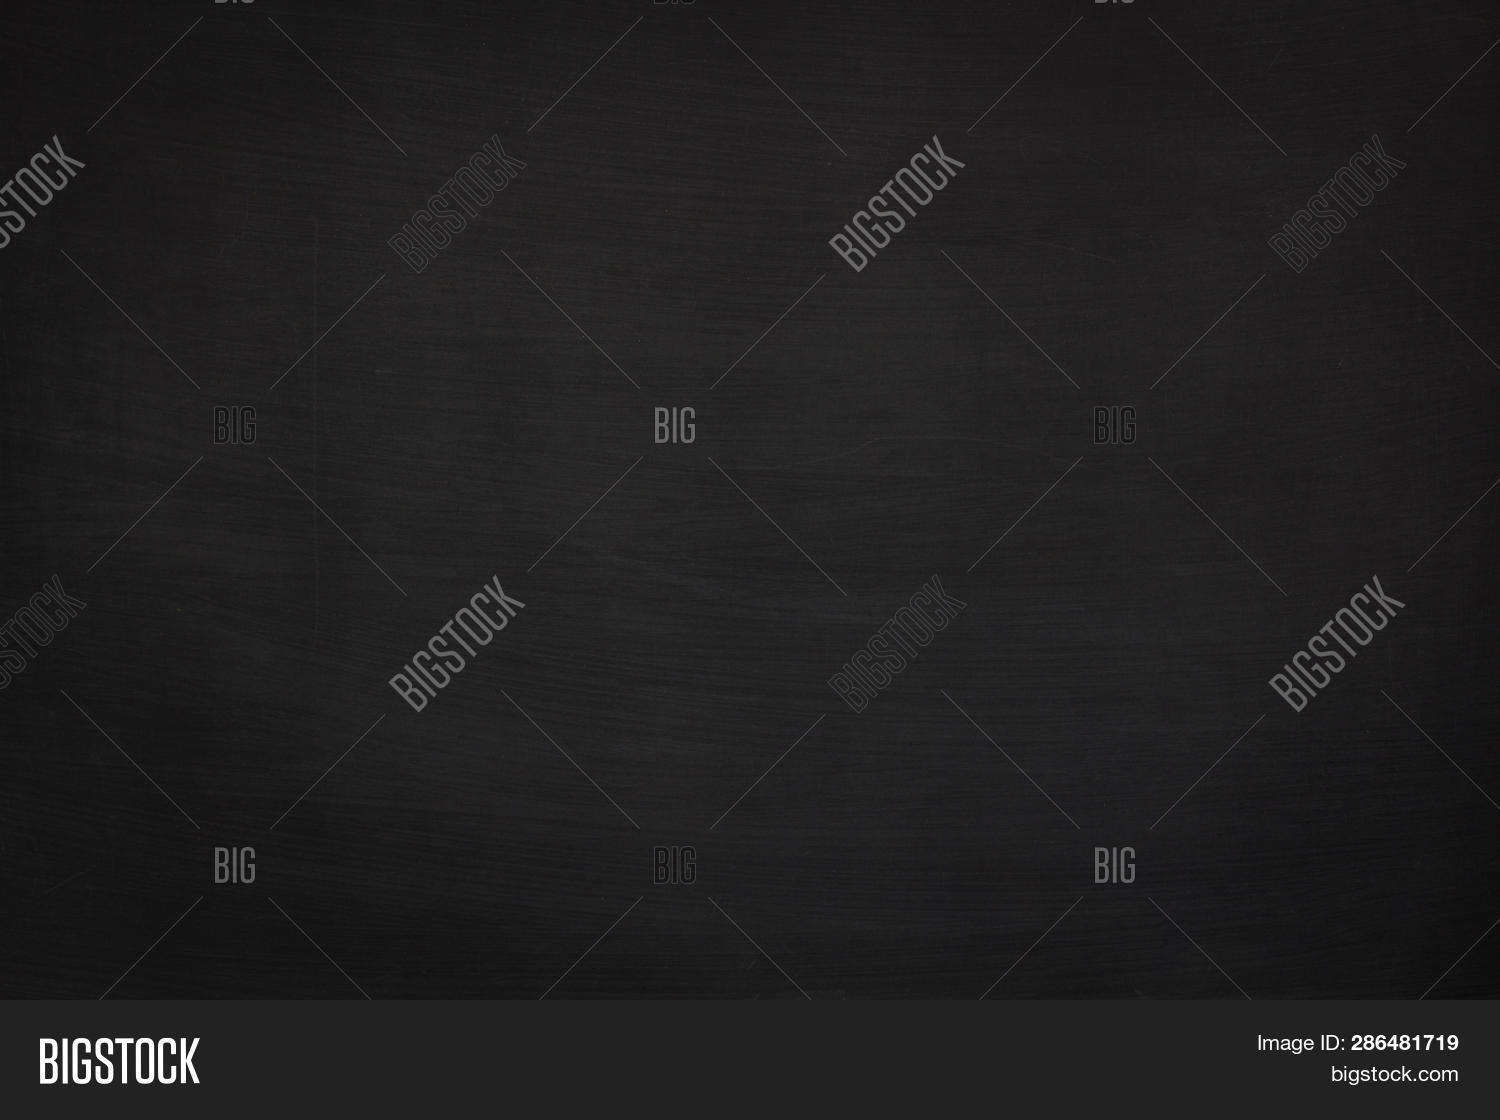 abstract,backdrop,background,billboard,black,blackboard,board,chalk,chalkboard,class,clean,concept,copy,crack,dark,decor,design,desk,dirty,distress,drawing,dust,edge,education,empty,frame,grain,graphic,grunge,grungy,message,old,paint,paper,pattern,retro,rough,rusty,school,scratch,sketch,space,template,texture,textured,vintage,wall,wallpaper,white,wood